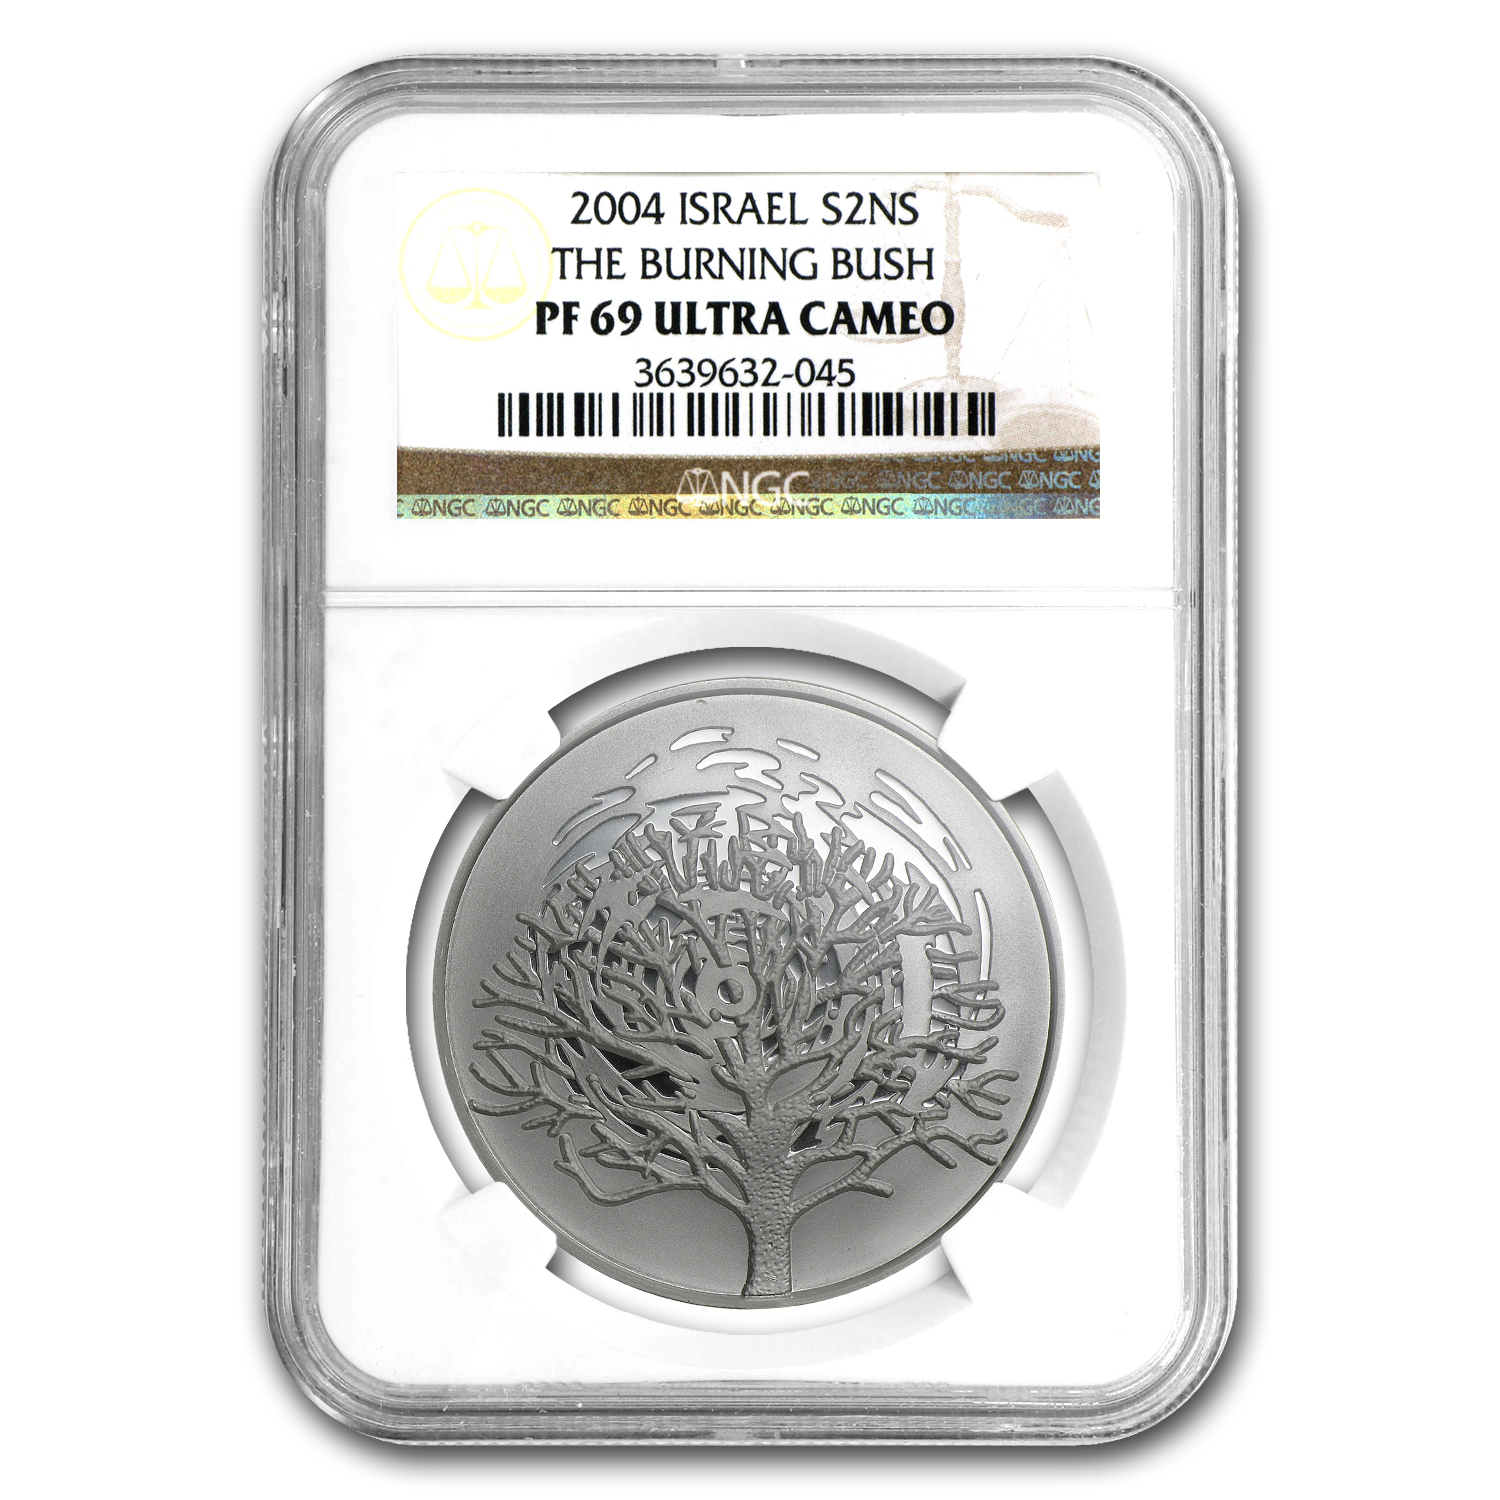 2004 Israel Silver 2 NIS The Burning Bush PF-69 NGC